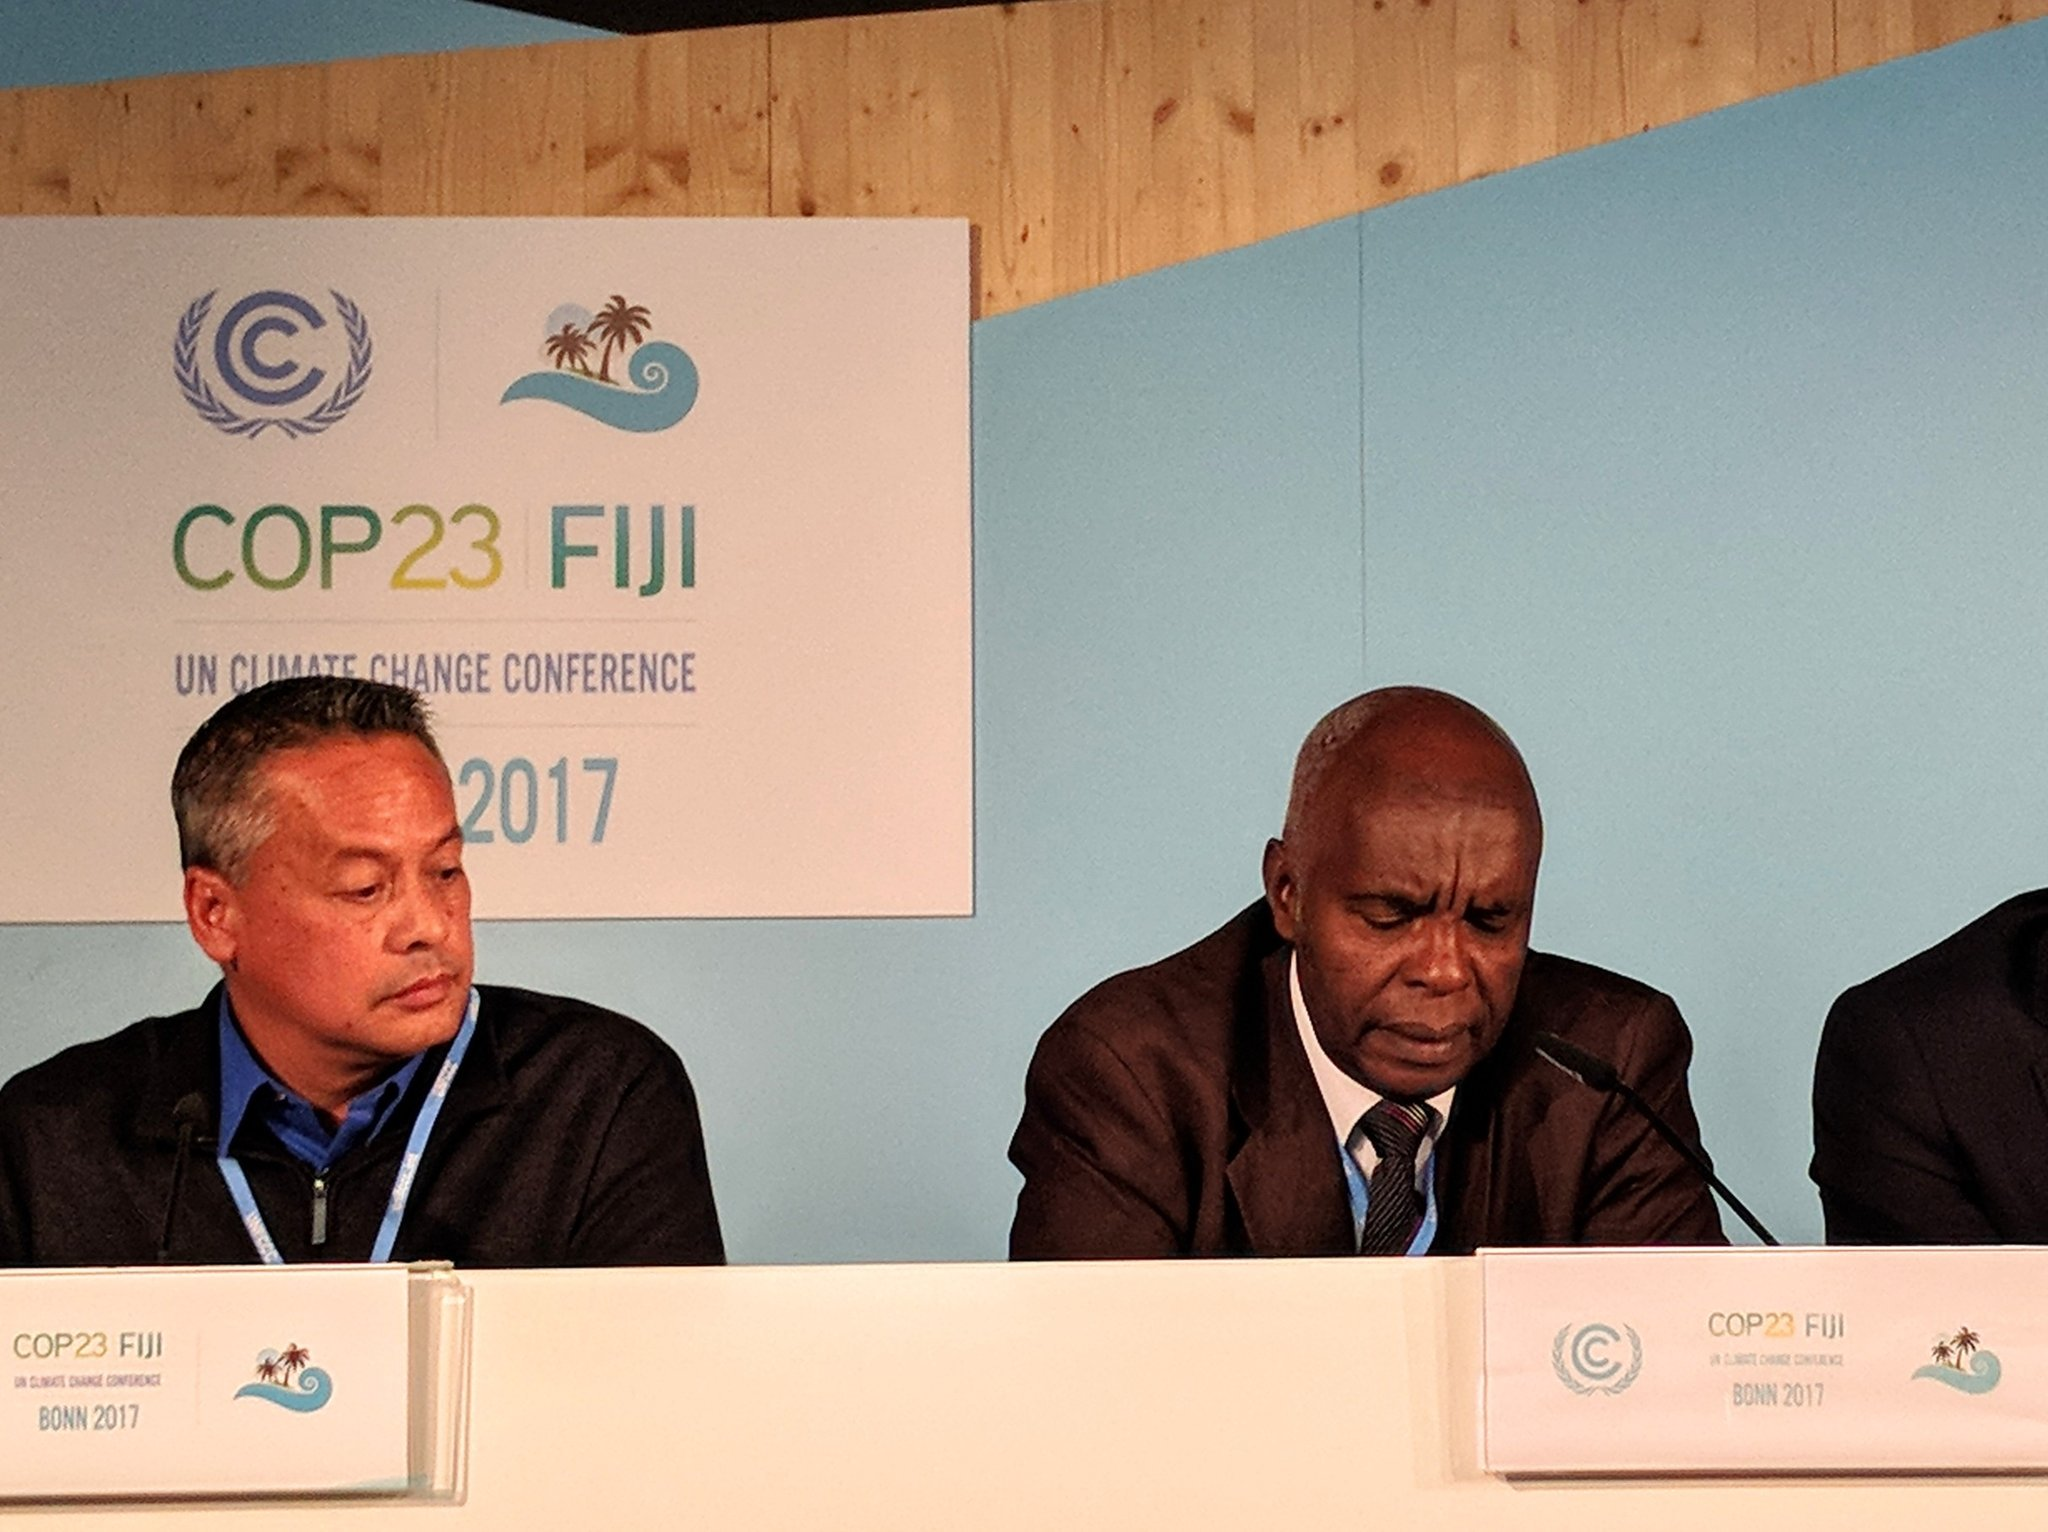 From the county-level in Kenya, @governorkibwana is explaining how they worked with IIED @adaconsortium & others on devolved climate finance #COP23 https://t.co/1b91L3WffQ